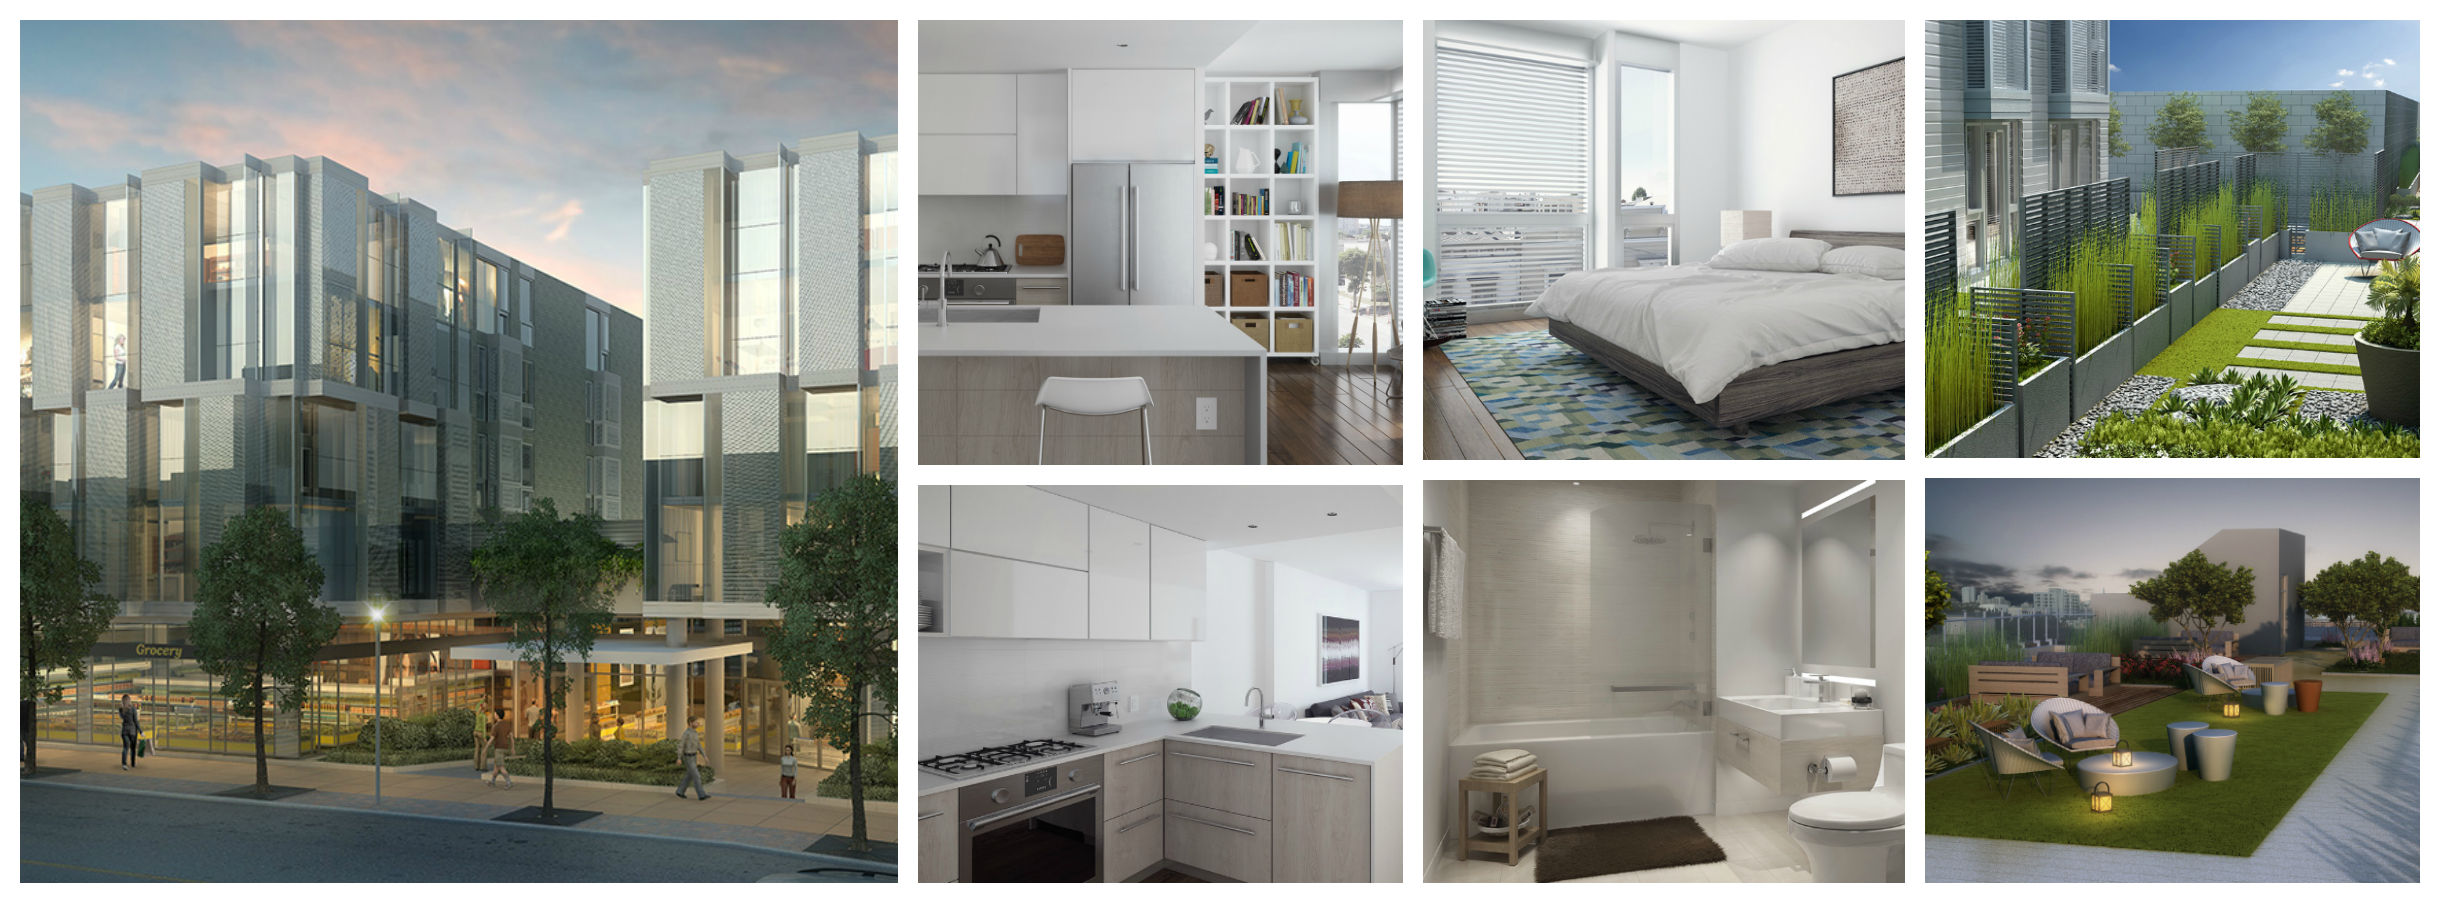 Fulton 555 Urbane Sf Specializes In Sf New Construction